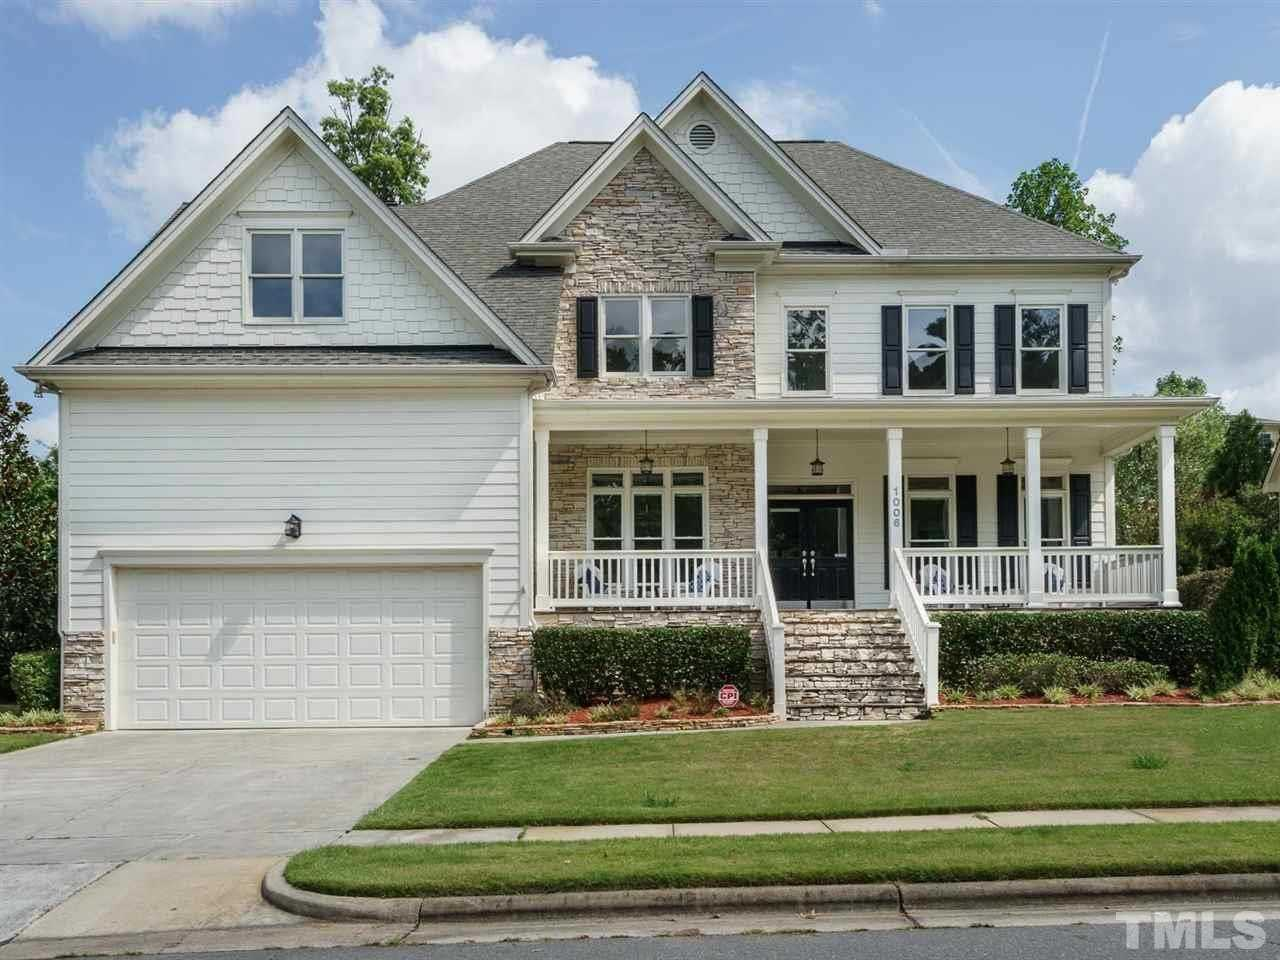 $649,900 - 5Br/5Ba -  for Sale in Carpenter Village, Cary